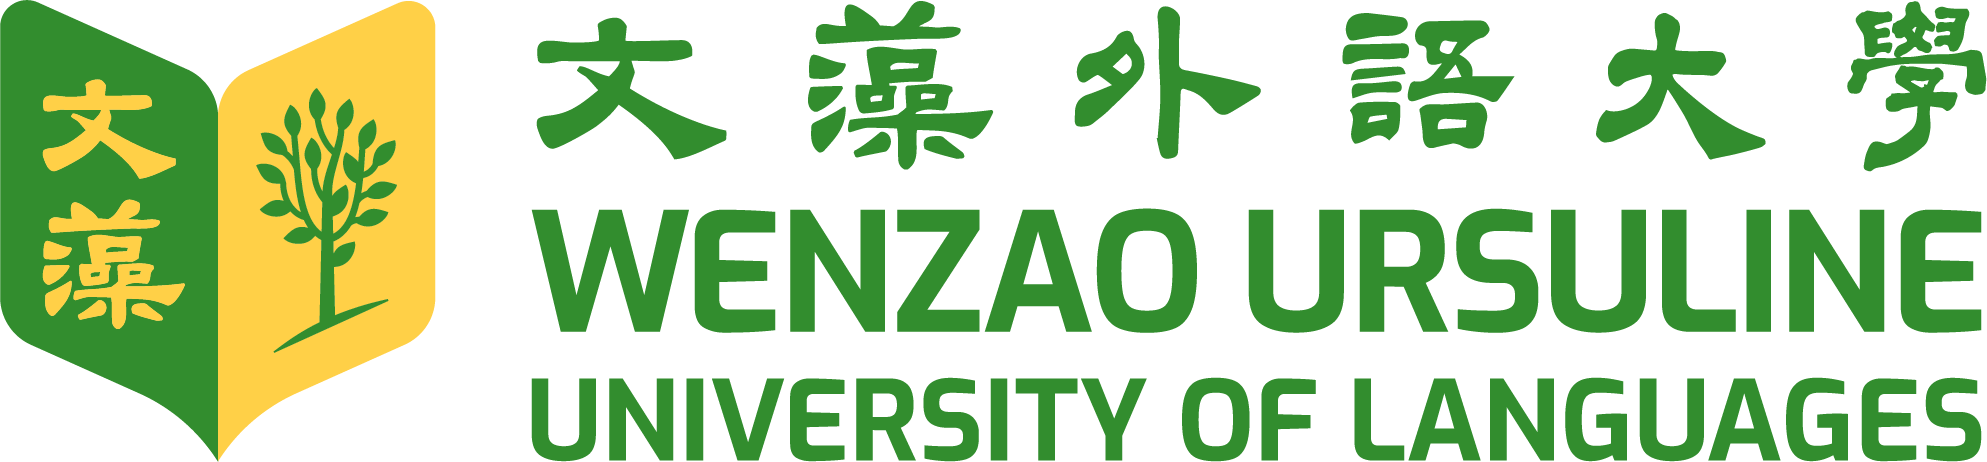 Wenzao_logo_1.png